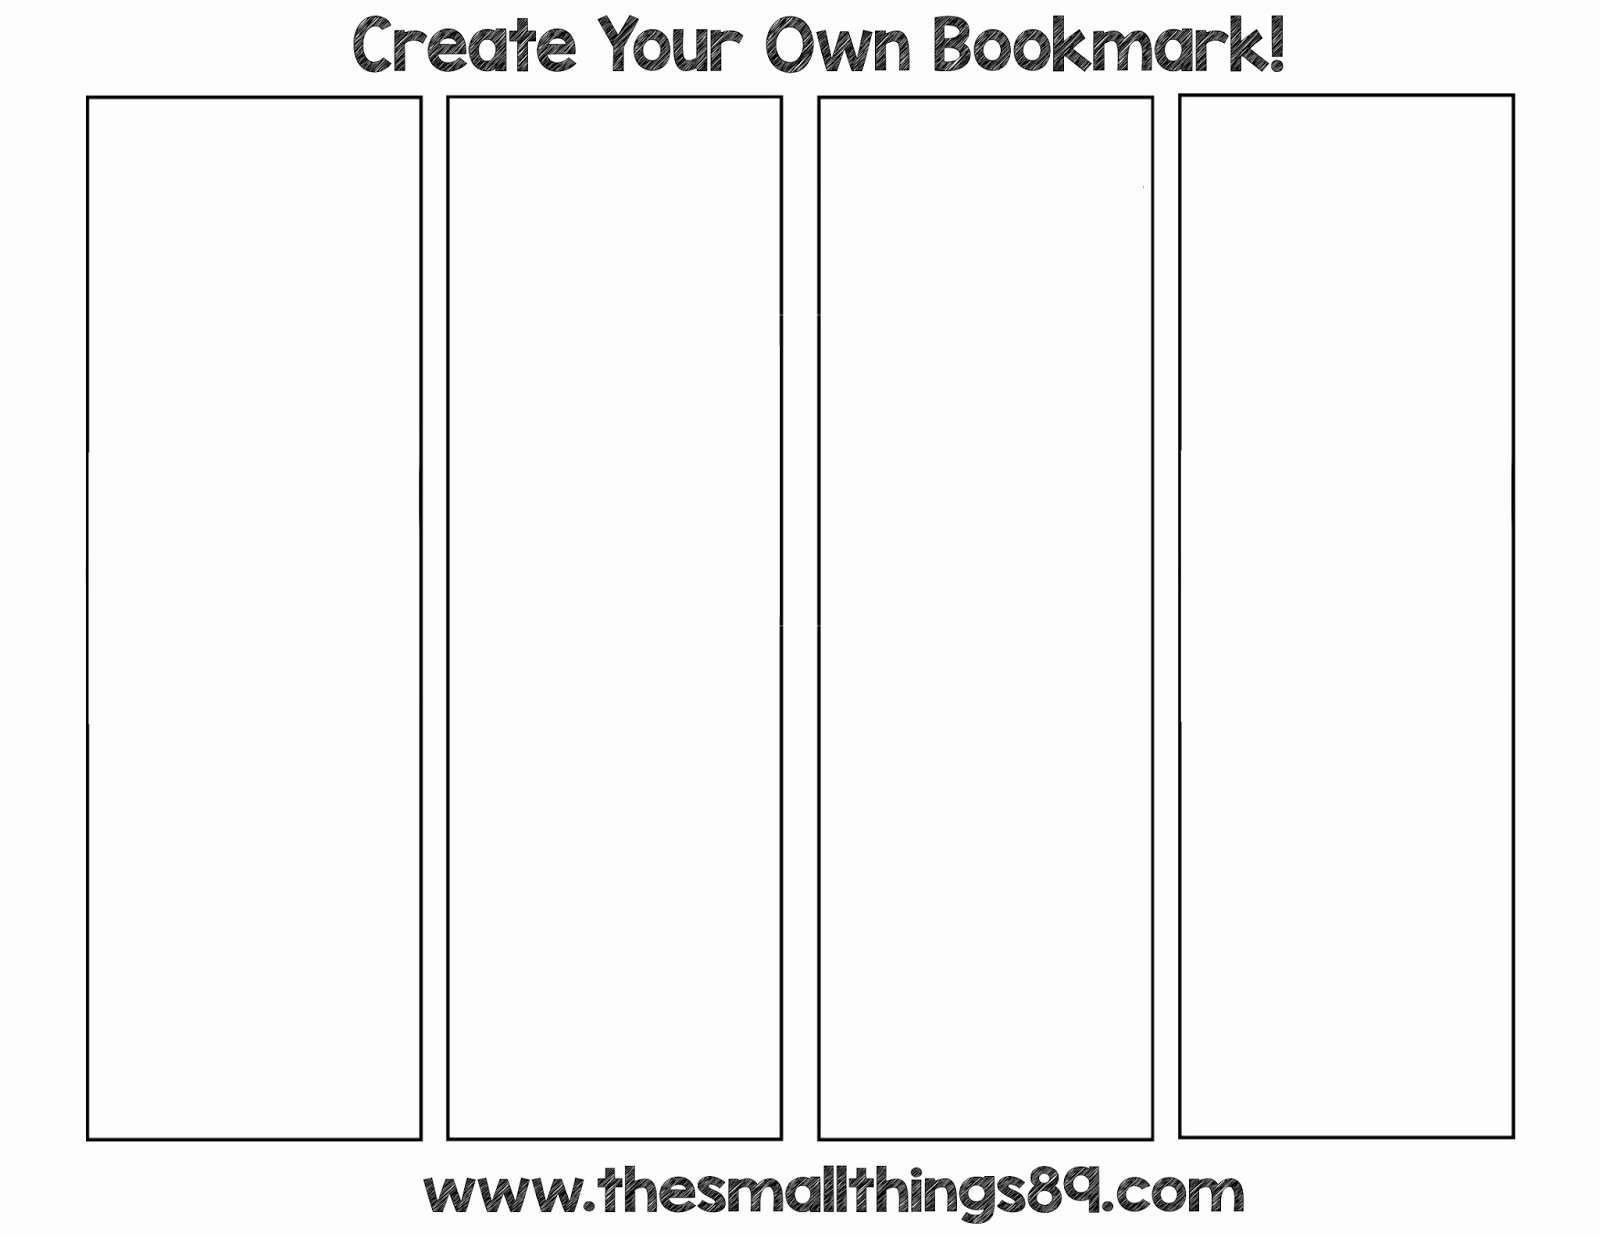 Free Blank Bookmark Template Awesome Back to School with Crayola Products Score Printable